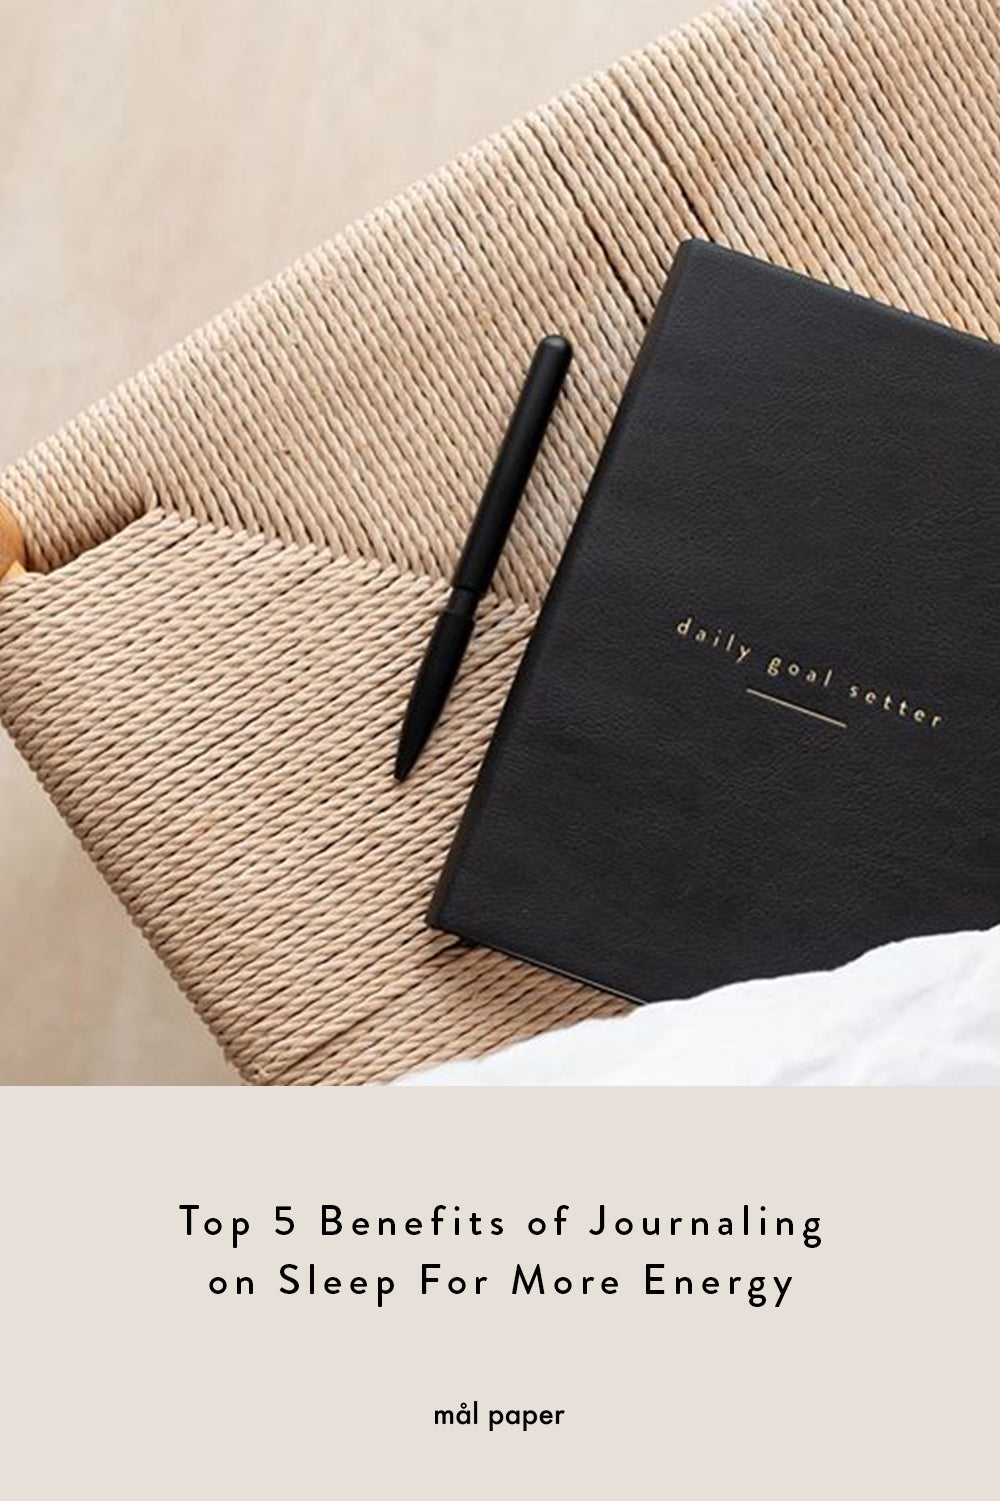 Top 5 Benefits of Journaling on Sleep For More Energy